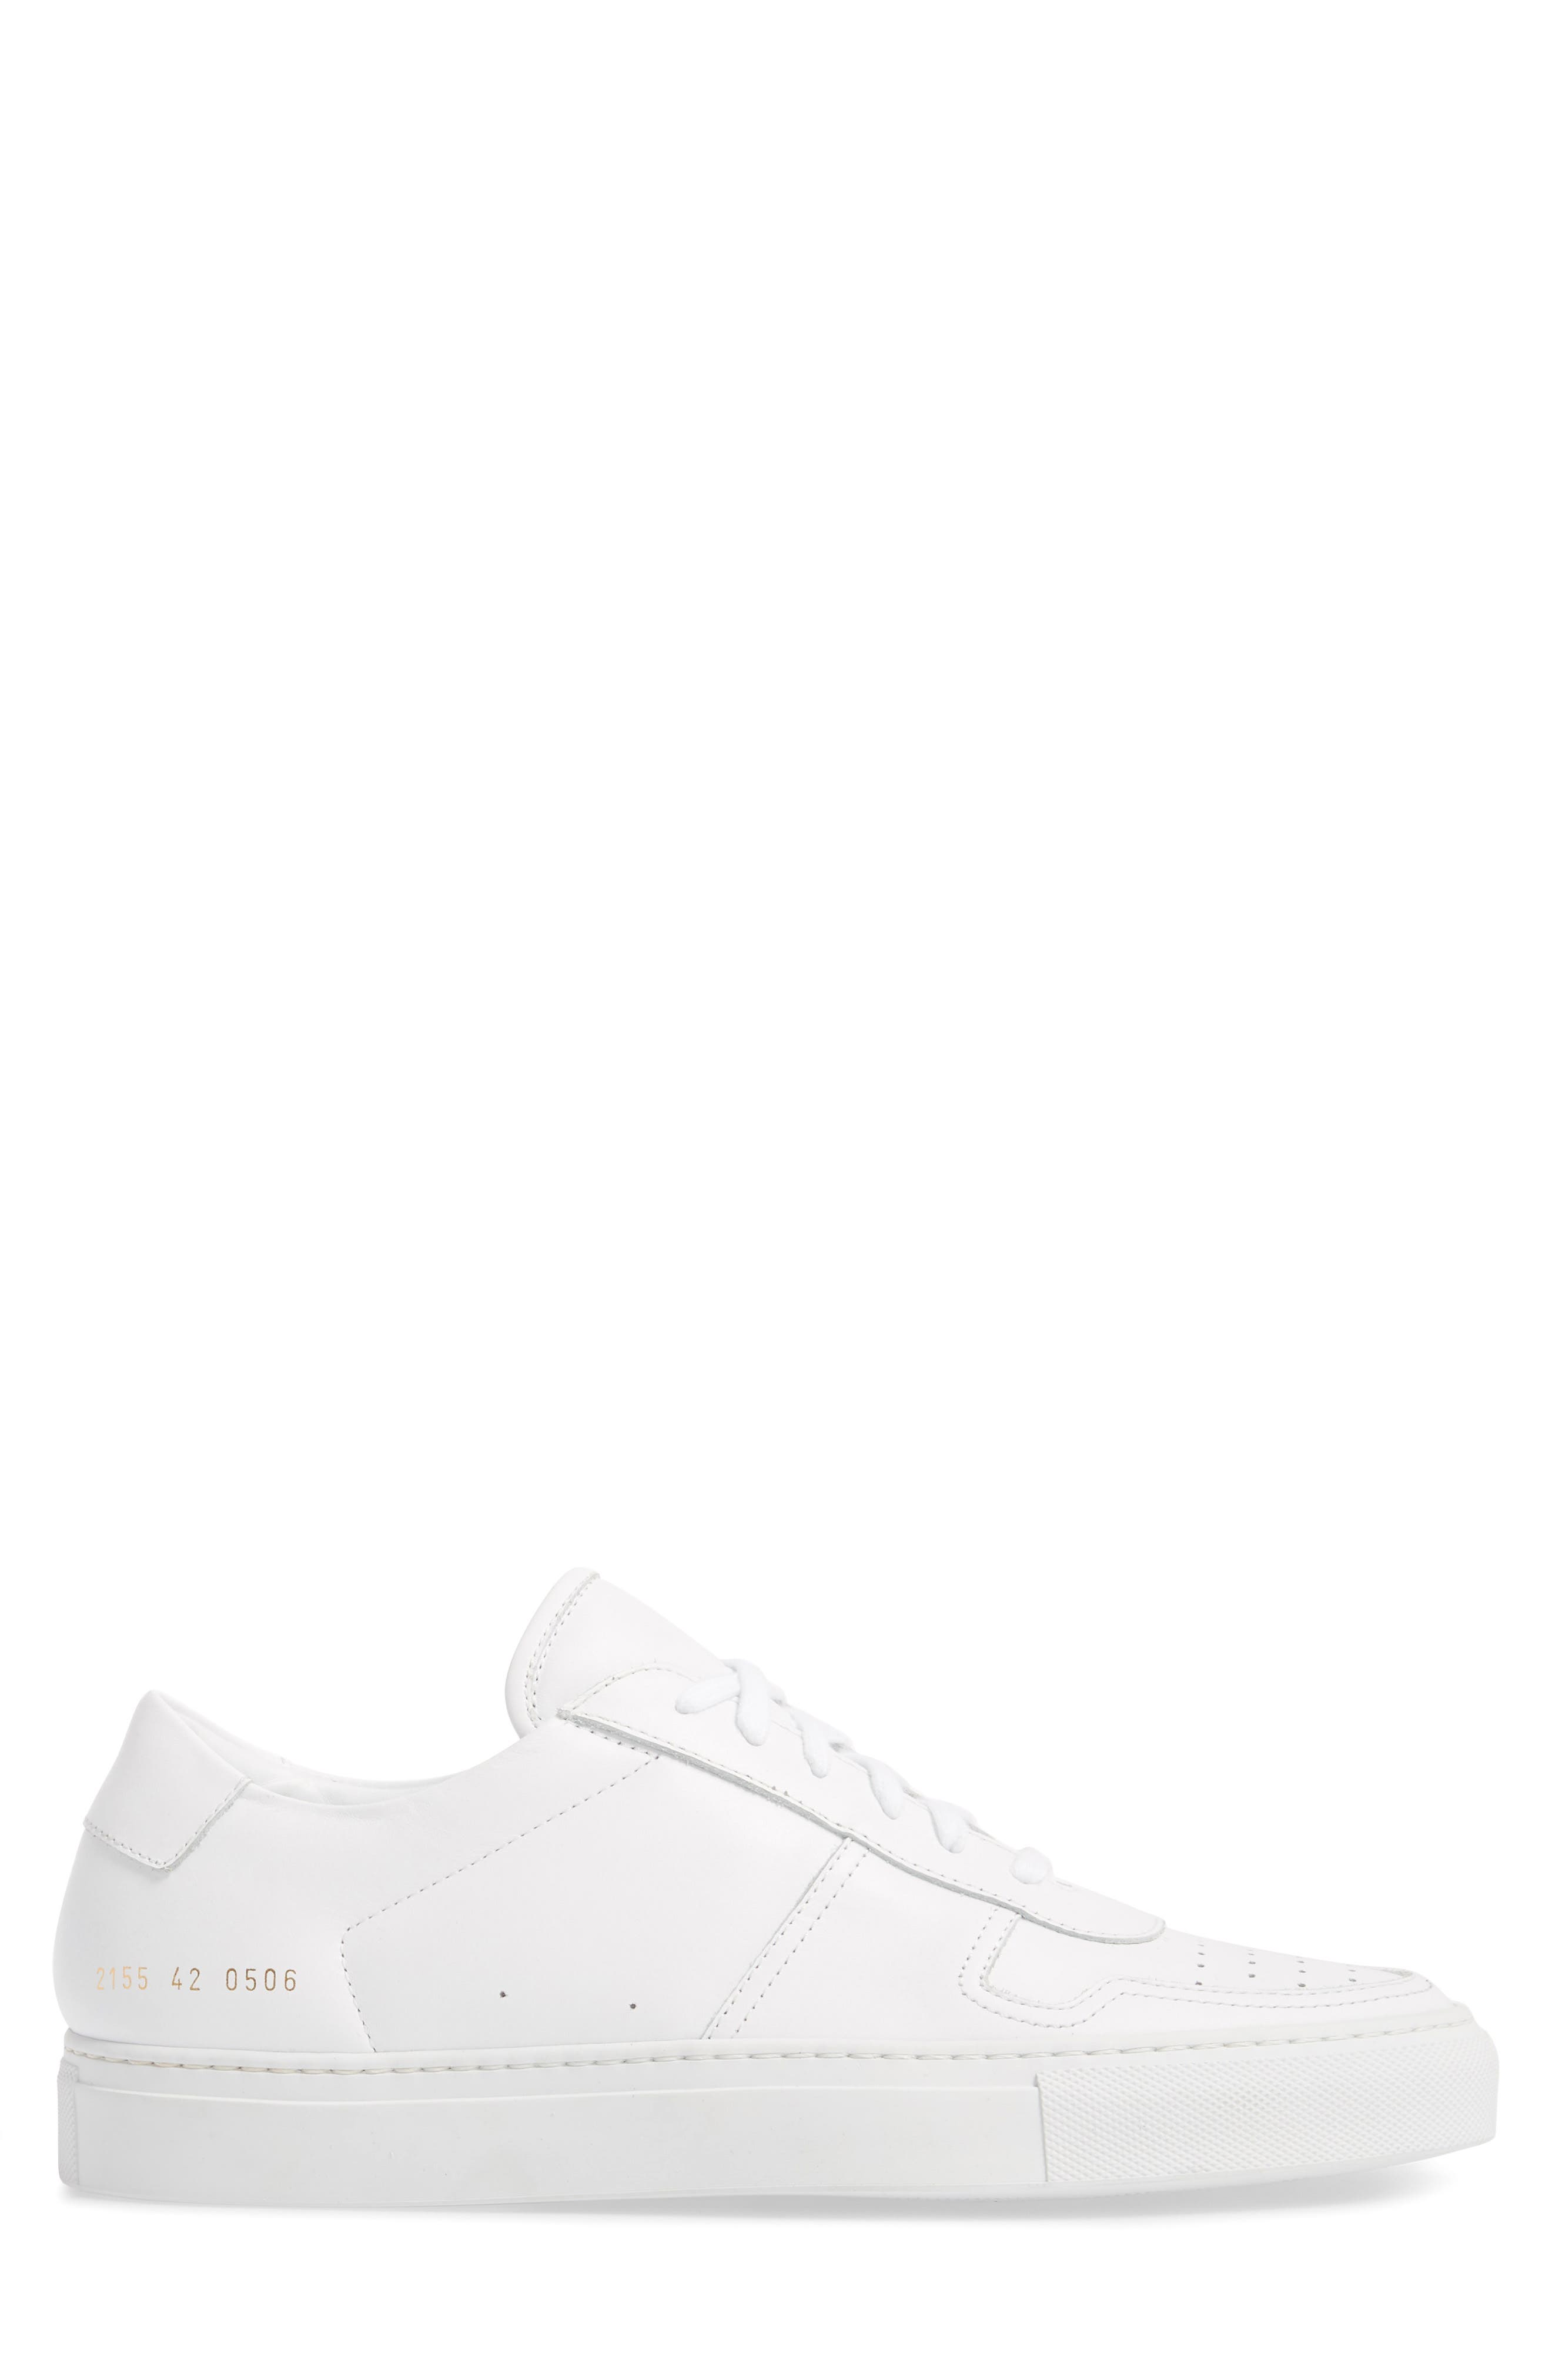 Bball Low Top Sneaker,                             Alternate thumbnail 3, color,                             WHITE LEATHER